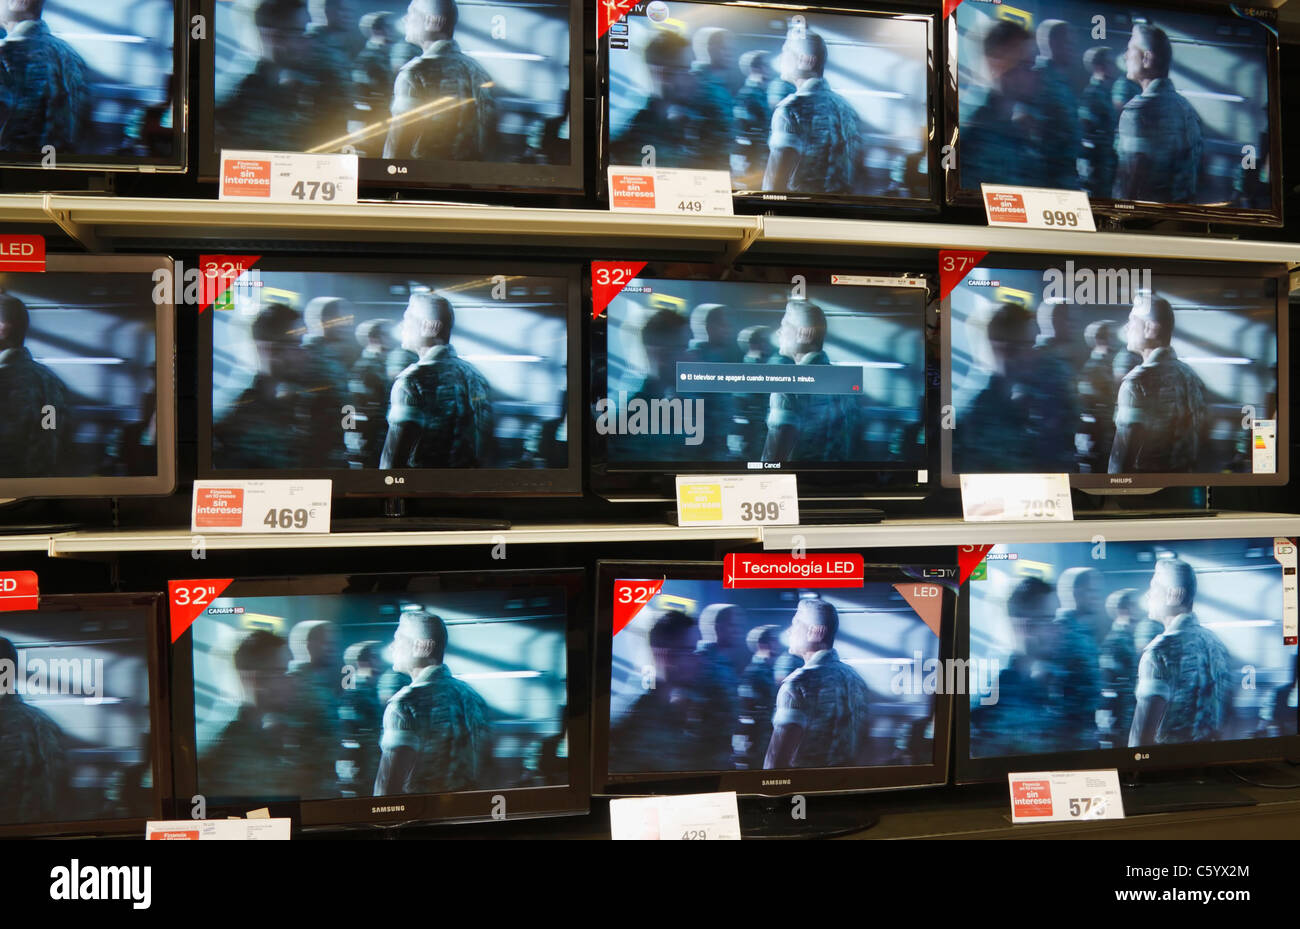 Plasma televisions on display in Carrefour supermarket in Spain - Stock Image